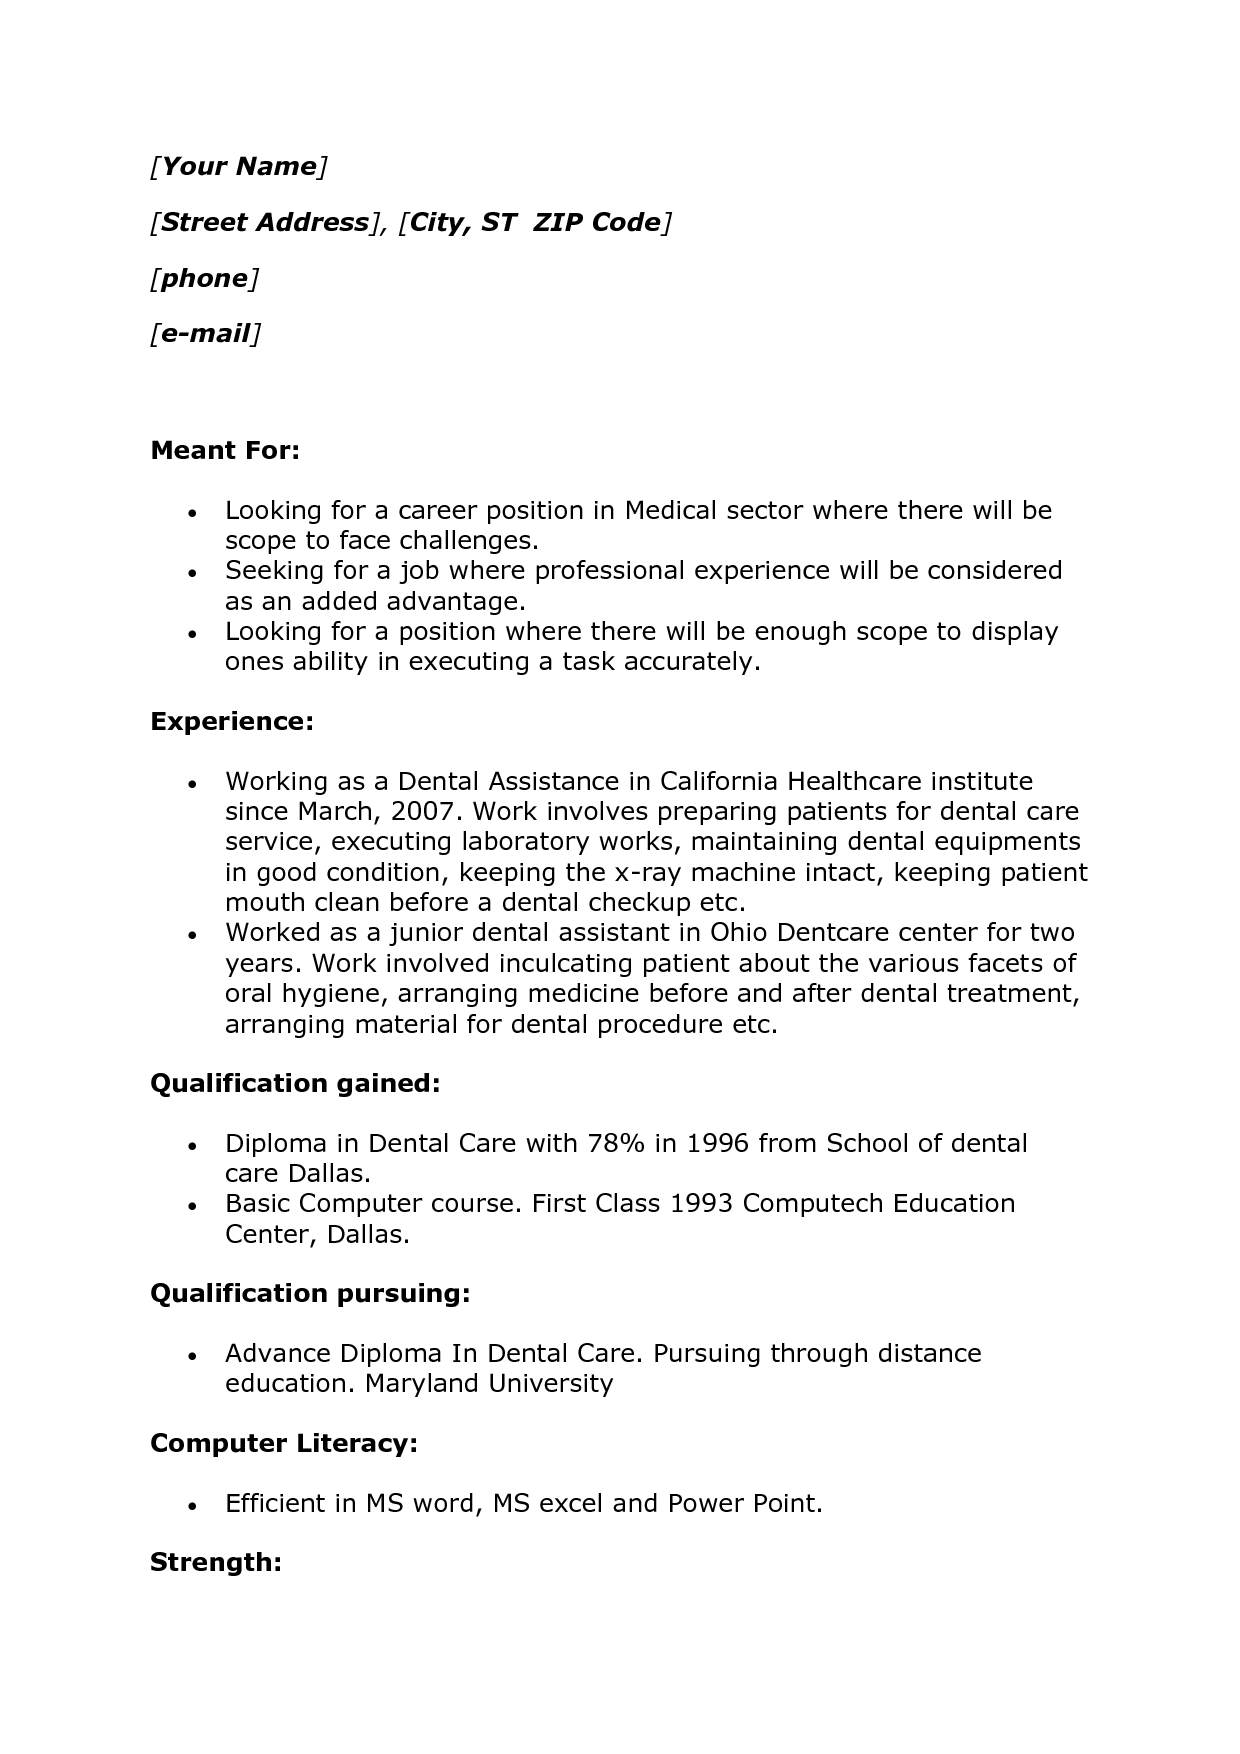 Dental Assistant Job Description For Resume Photo Dental Assistant Resume  Example Images